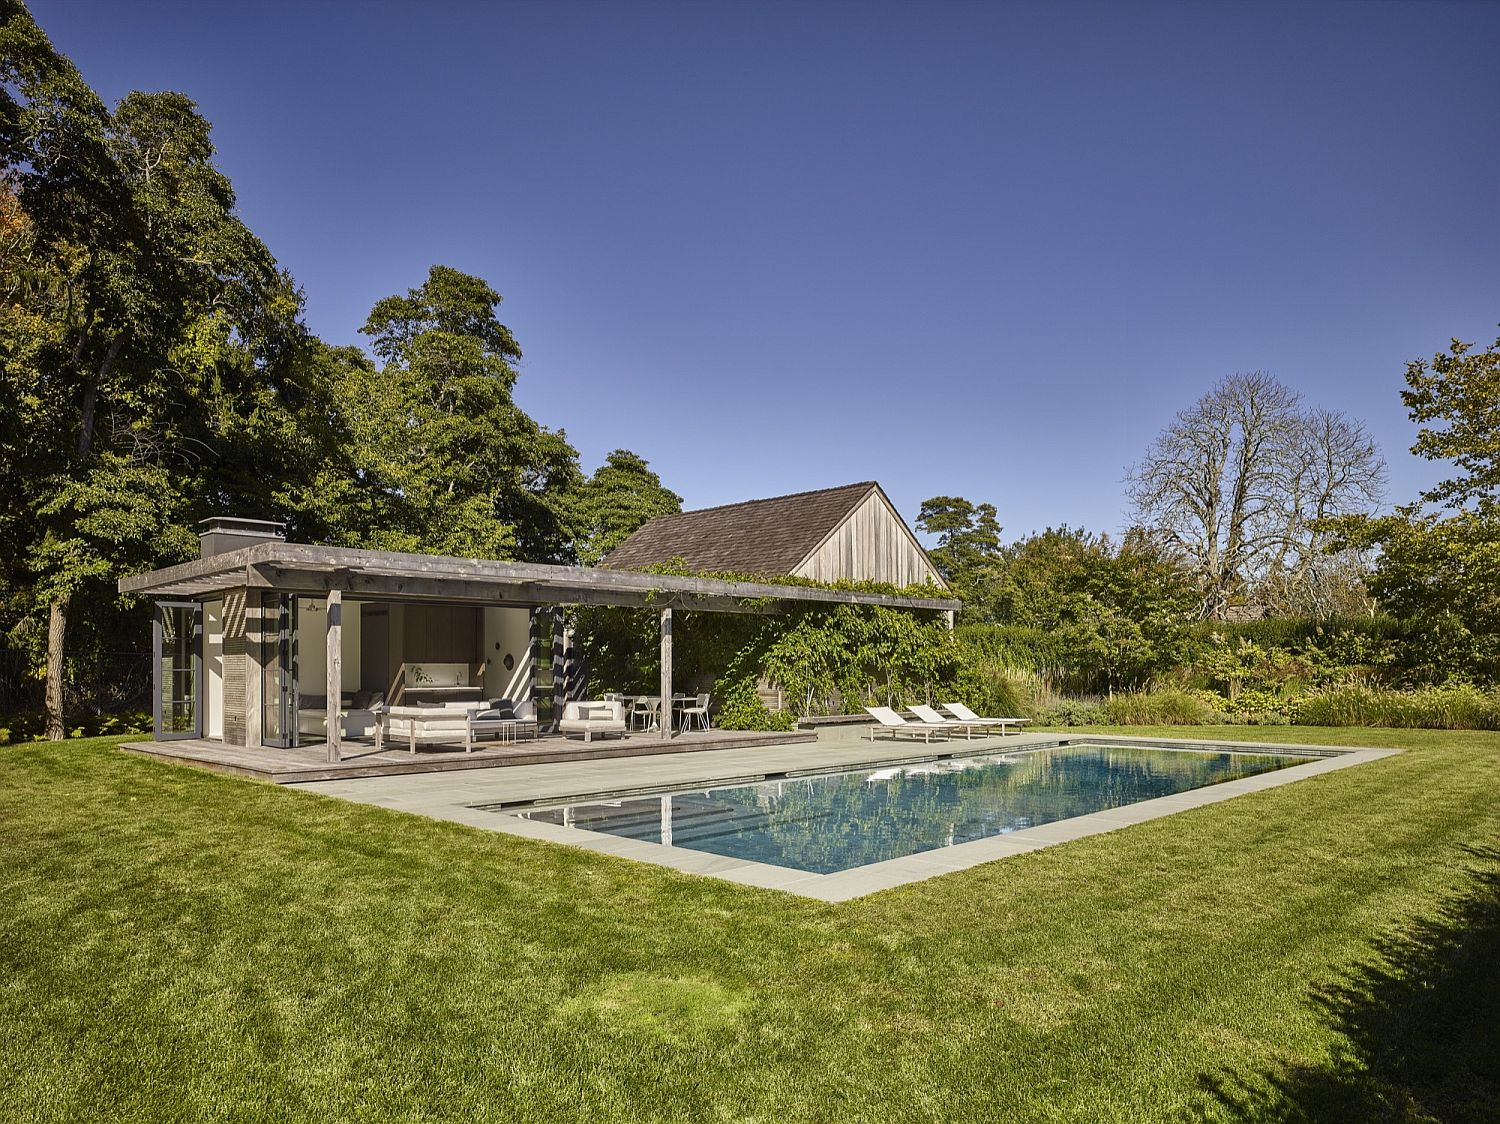 Pool house blends in with the backdrop effortlessly